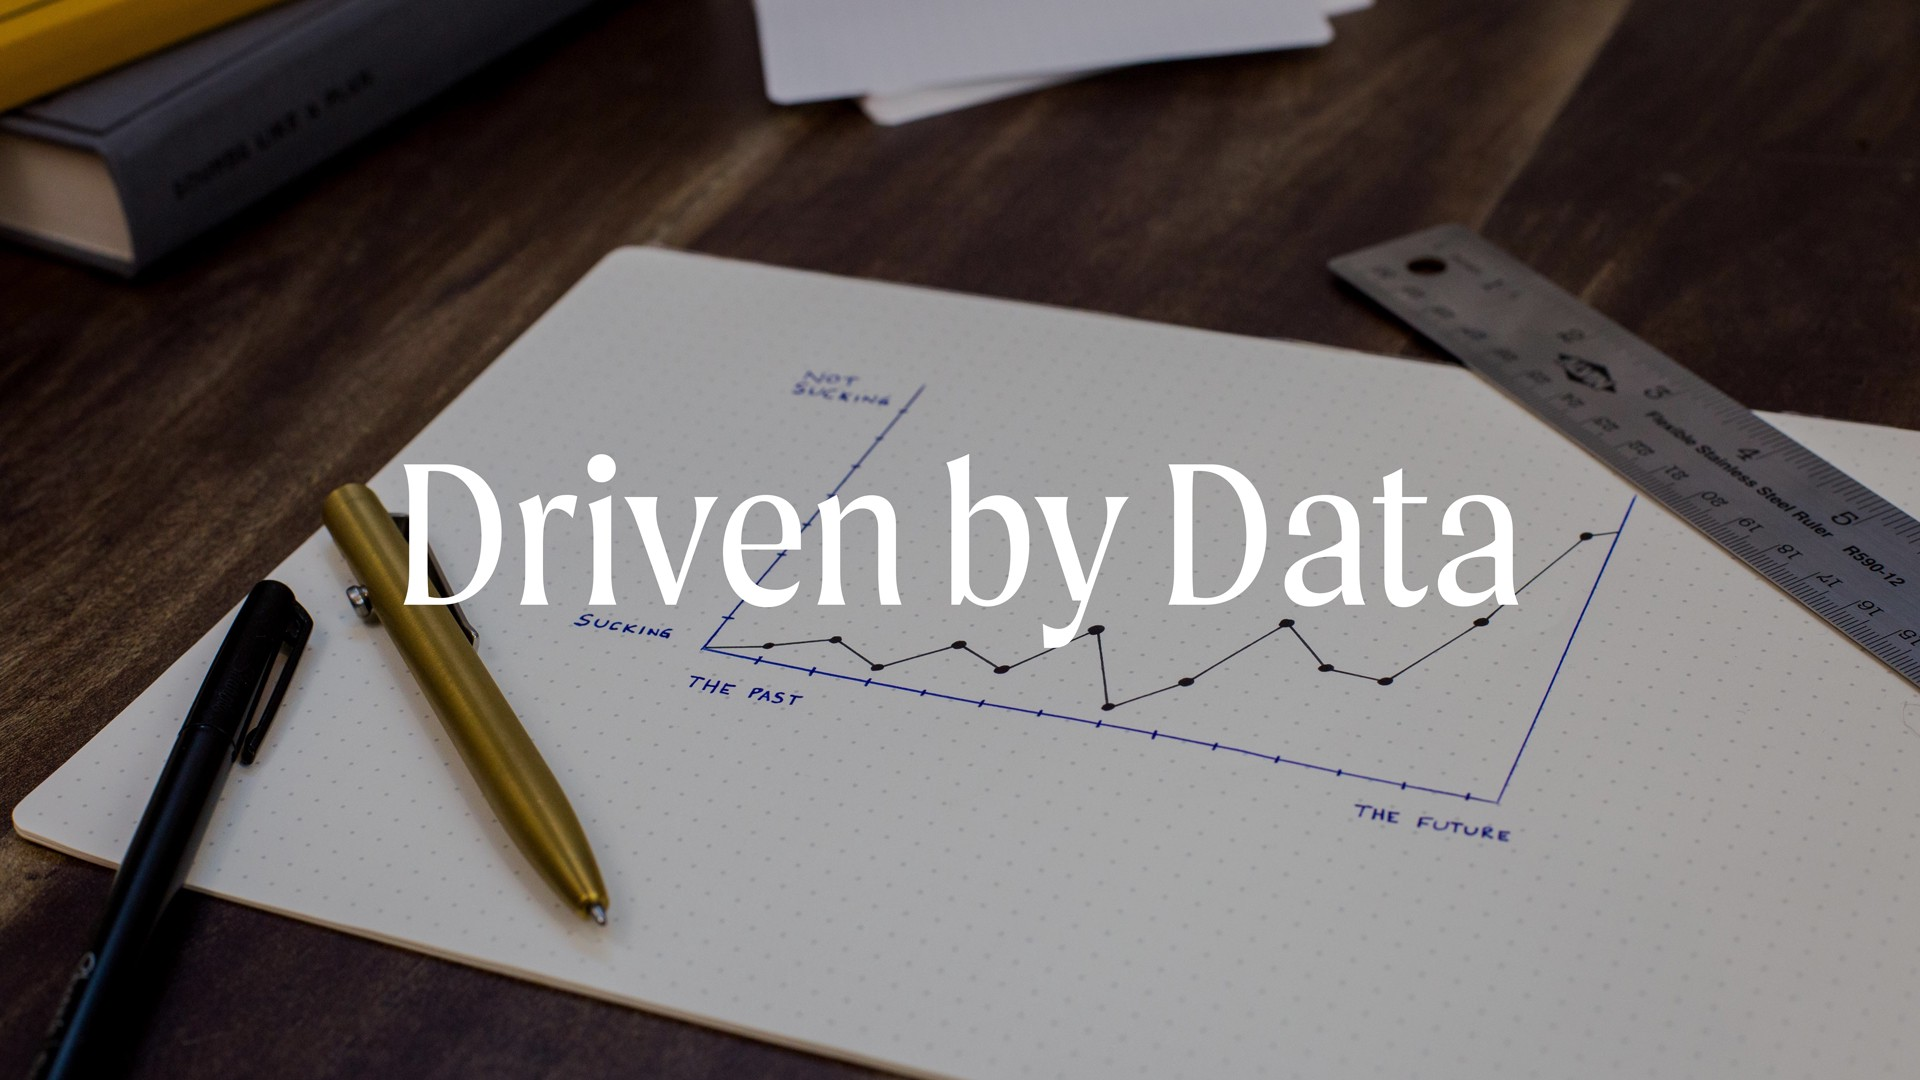 In Session: Driven by Data